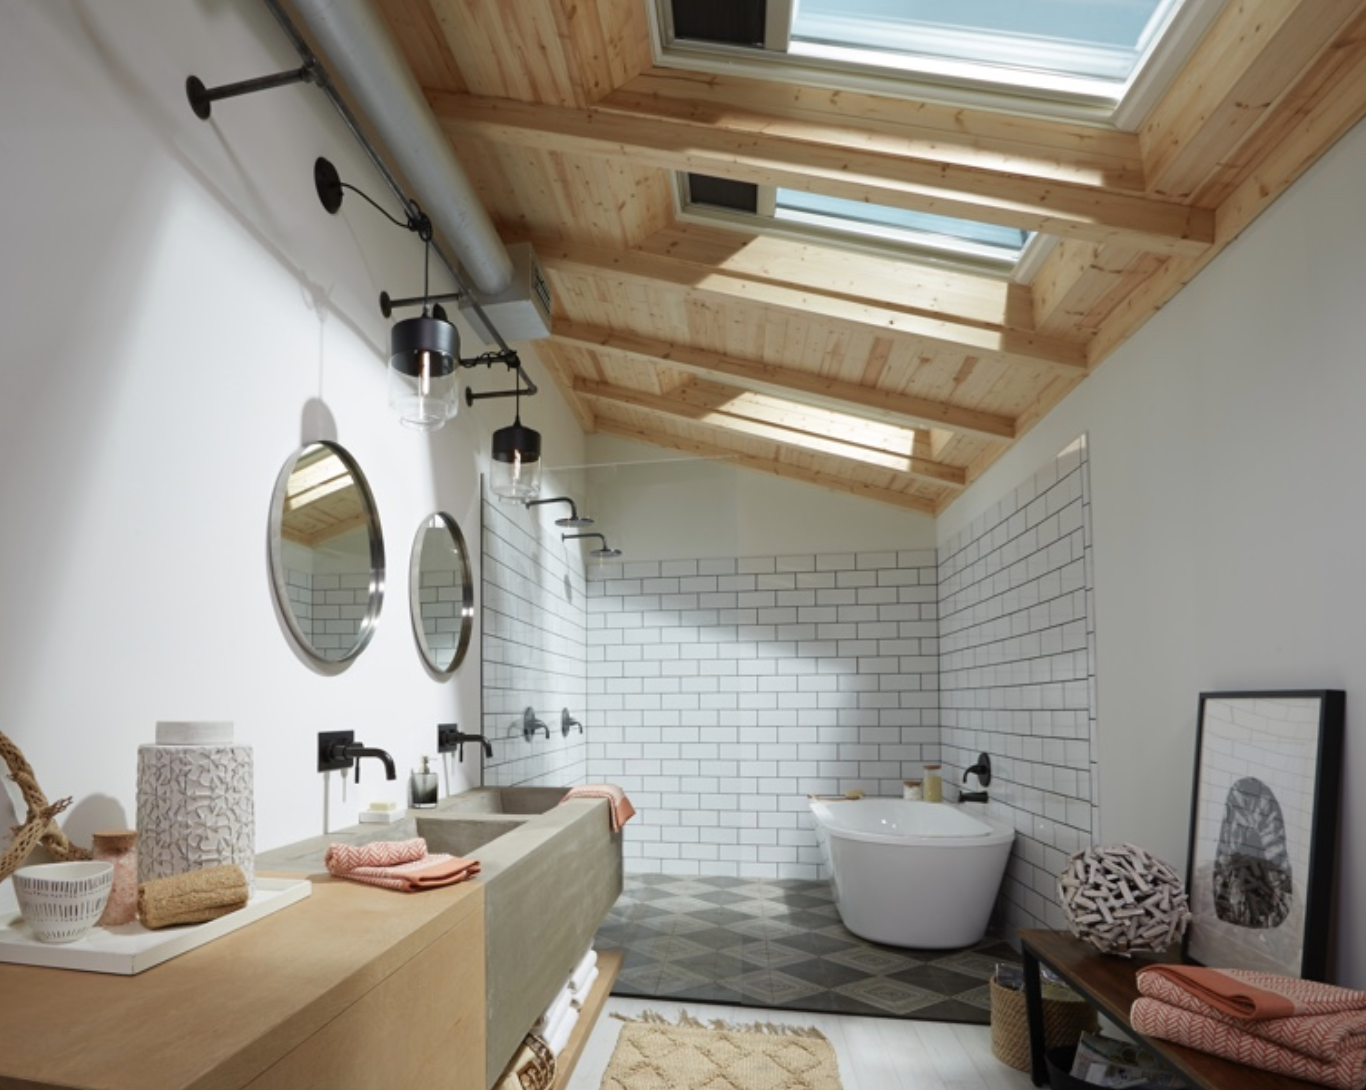 Fresh air skylights.